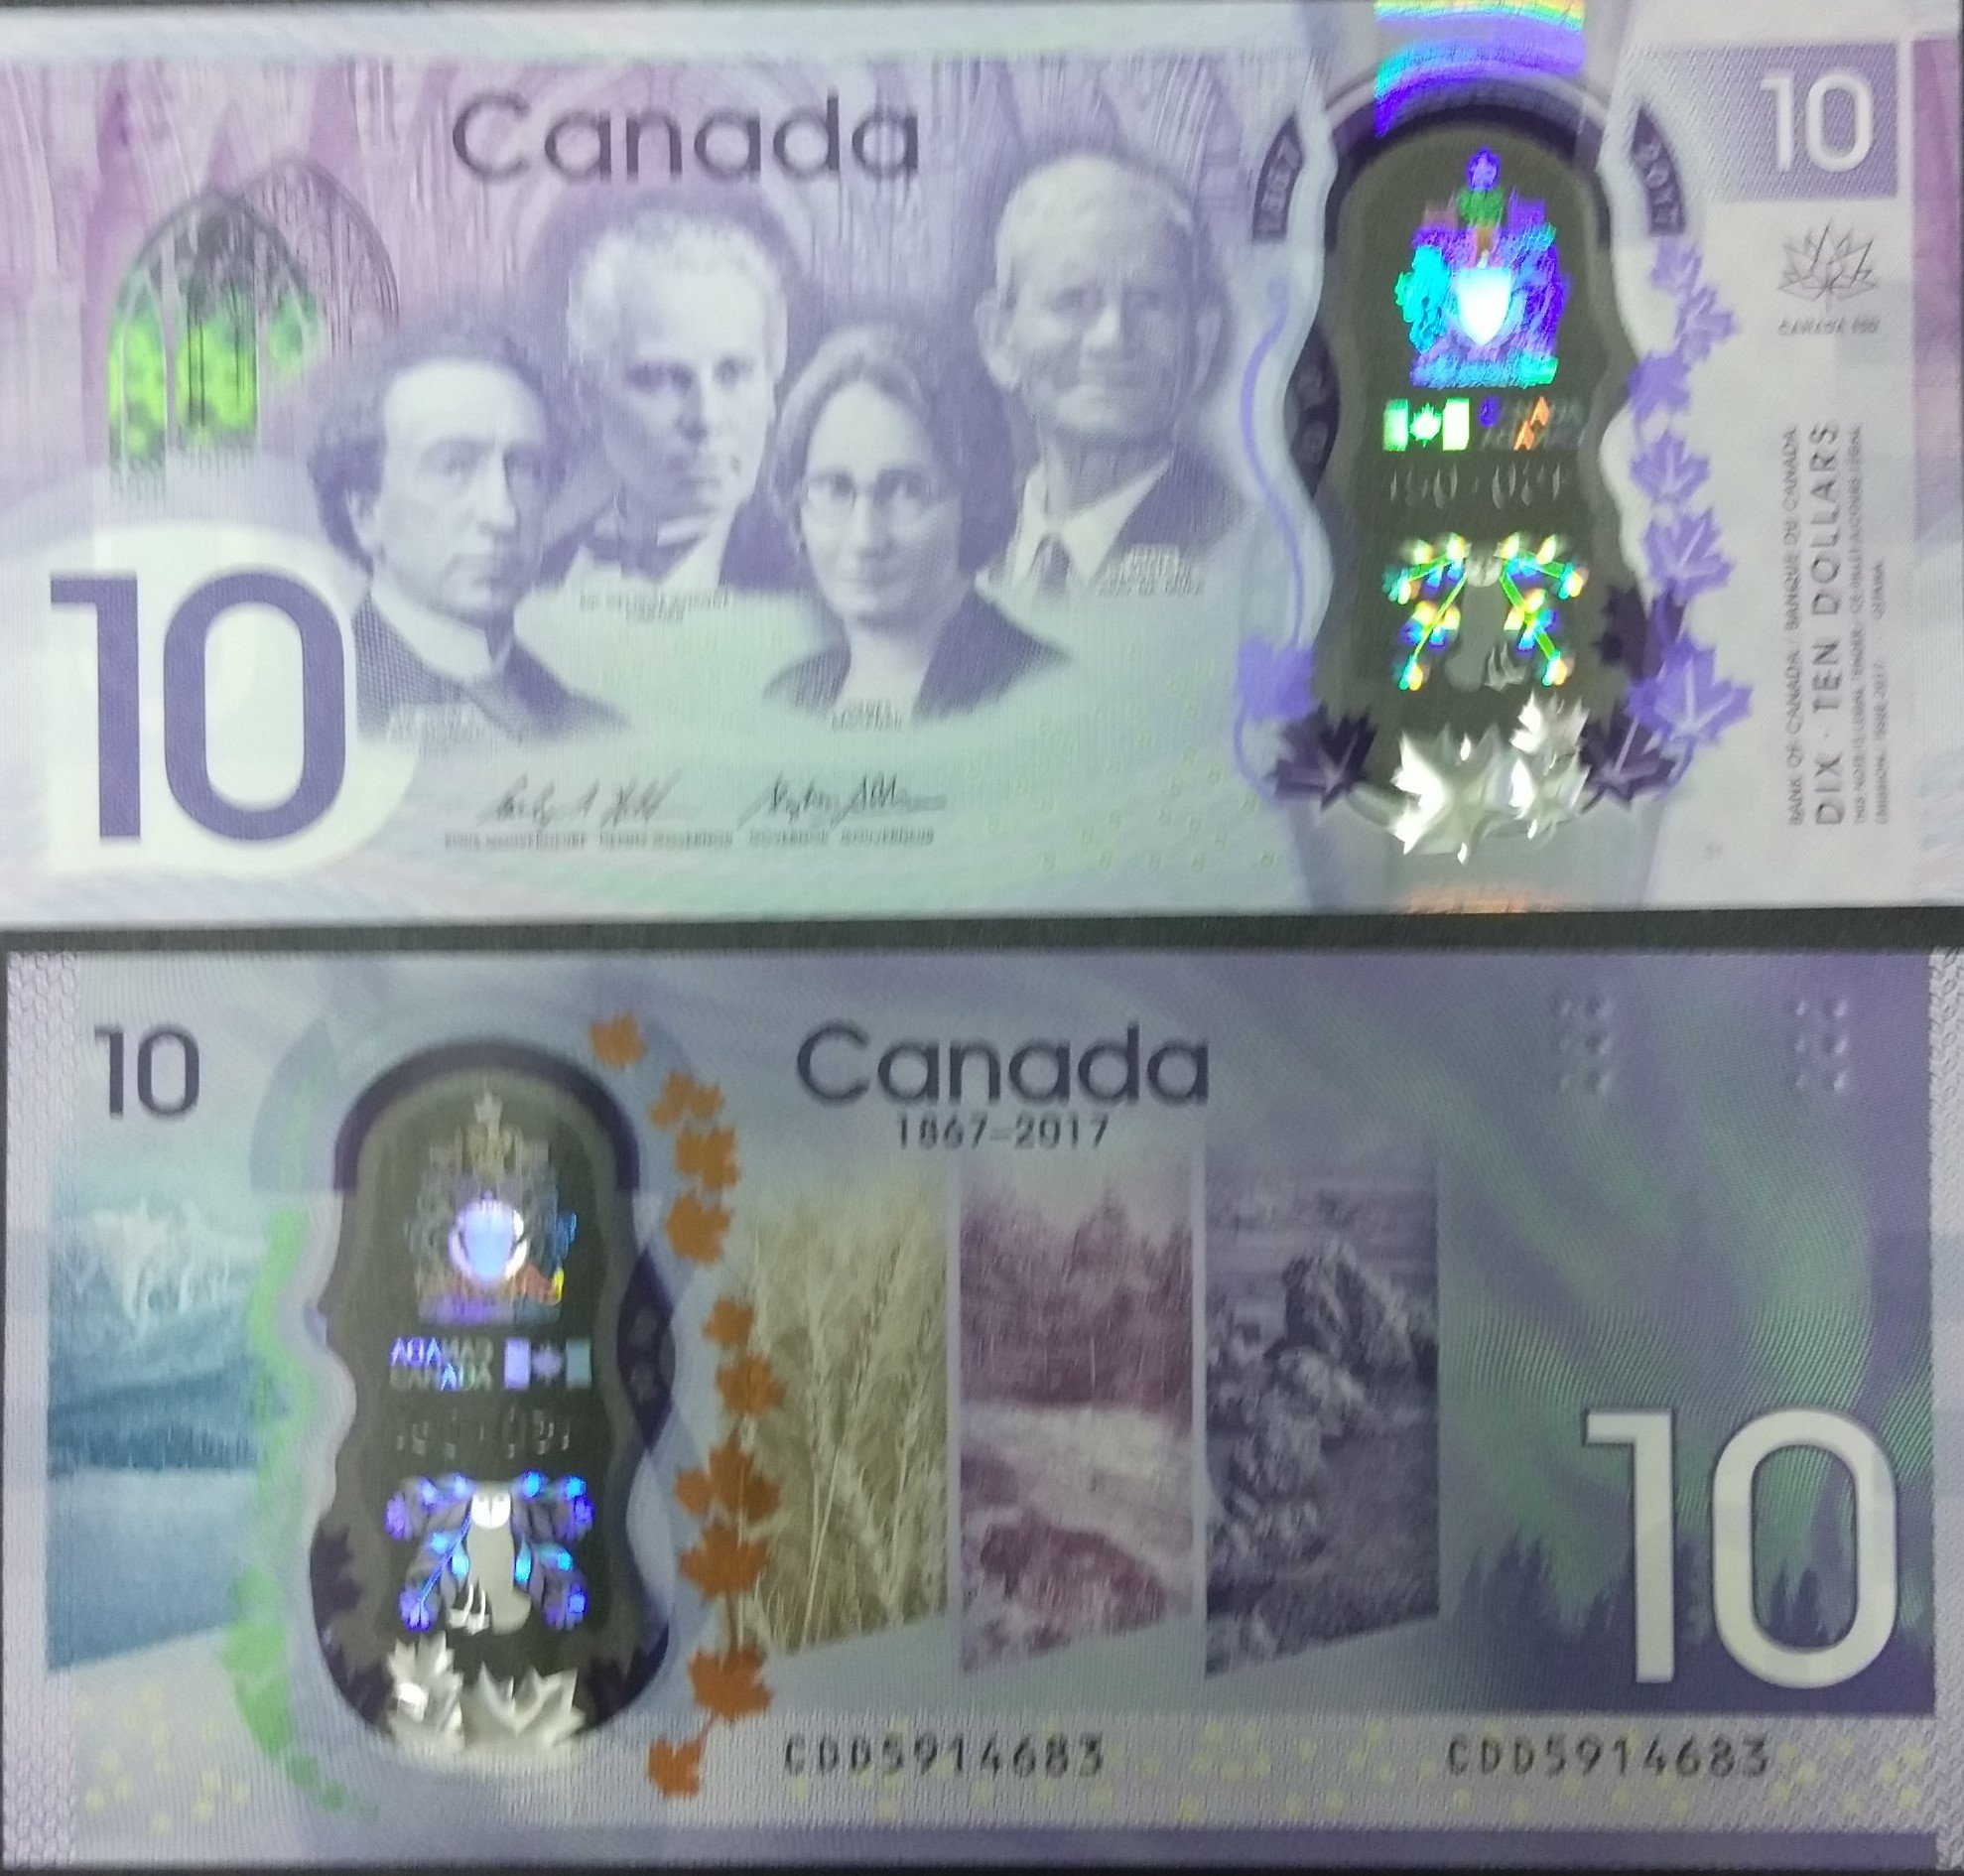 Canada 10 dollars polymer banknote for sale